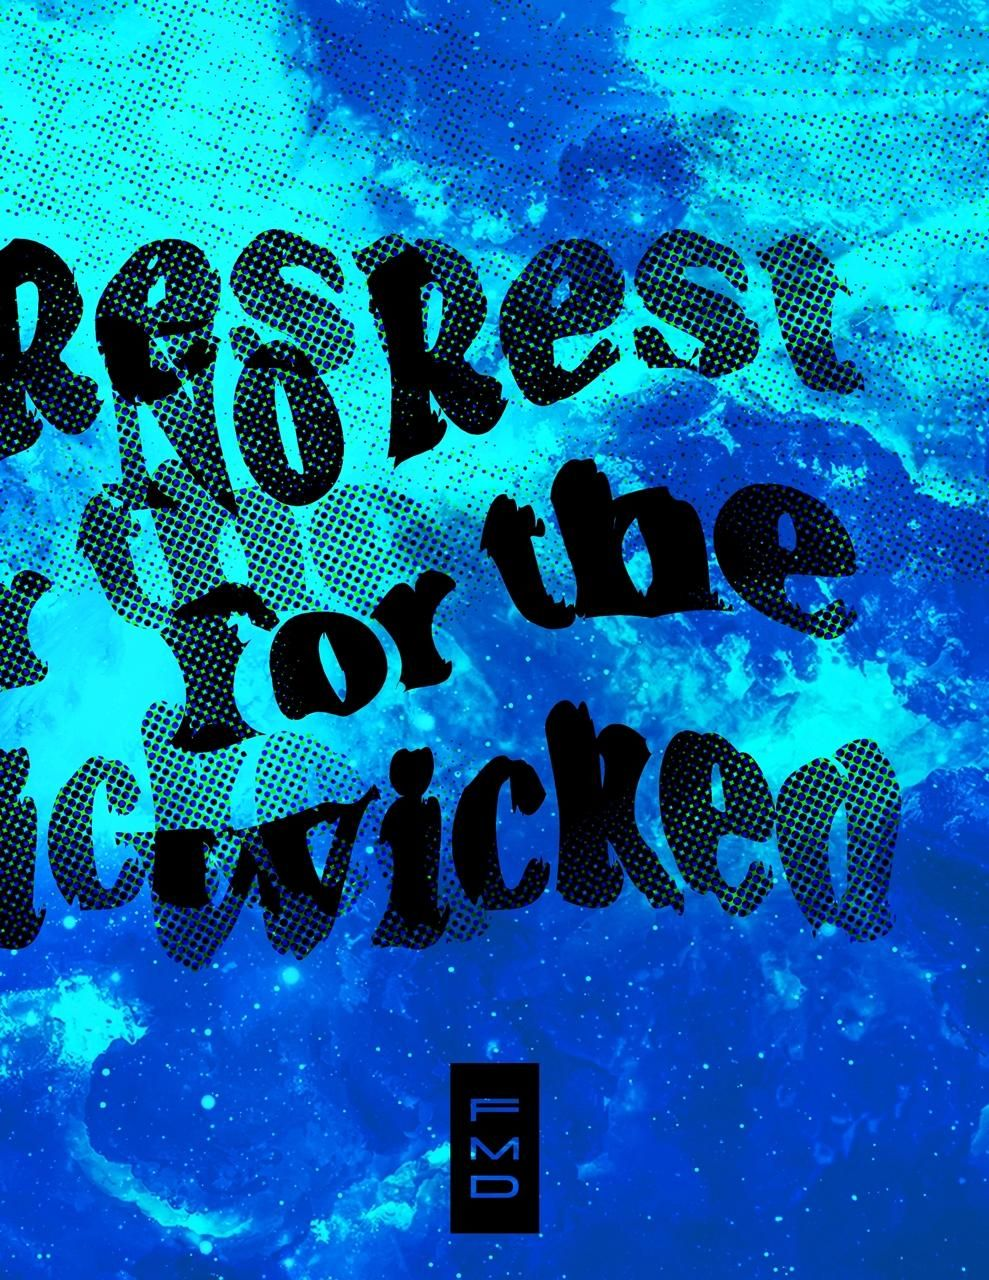 No Rest for the Wicked - image 2 - student project